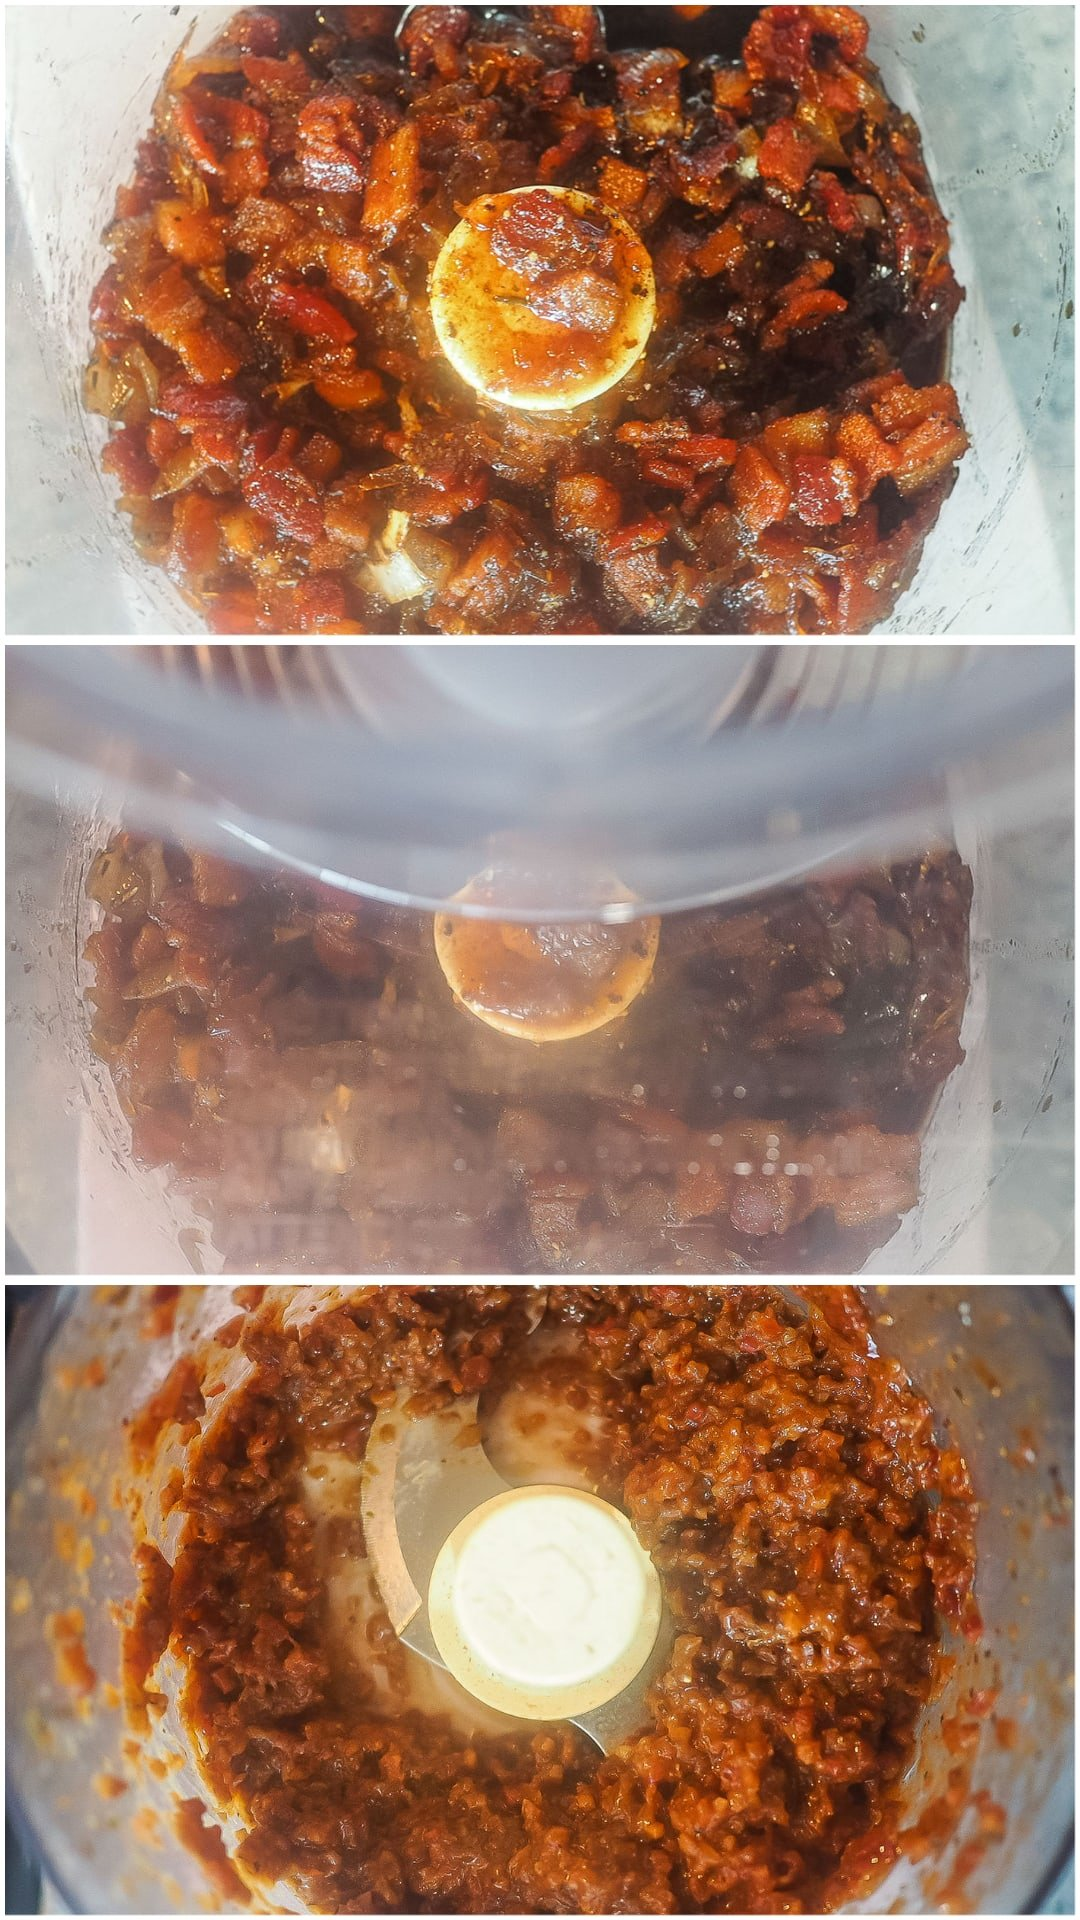 A collage of images showing how to make bacon jam.